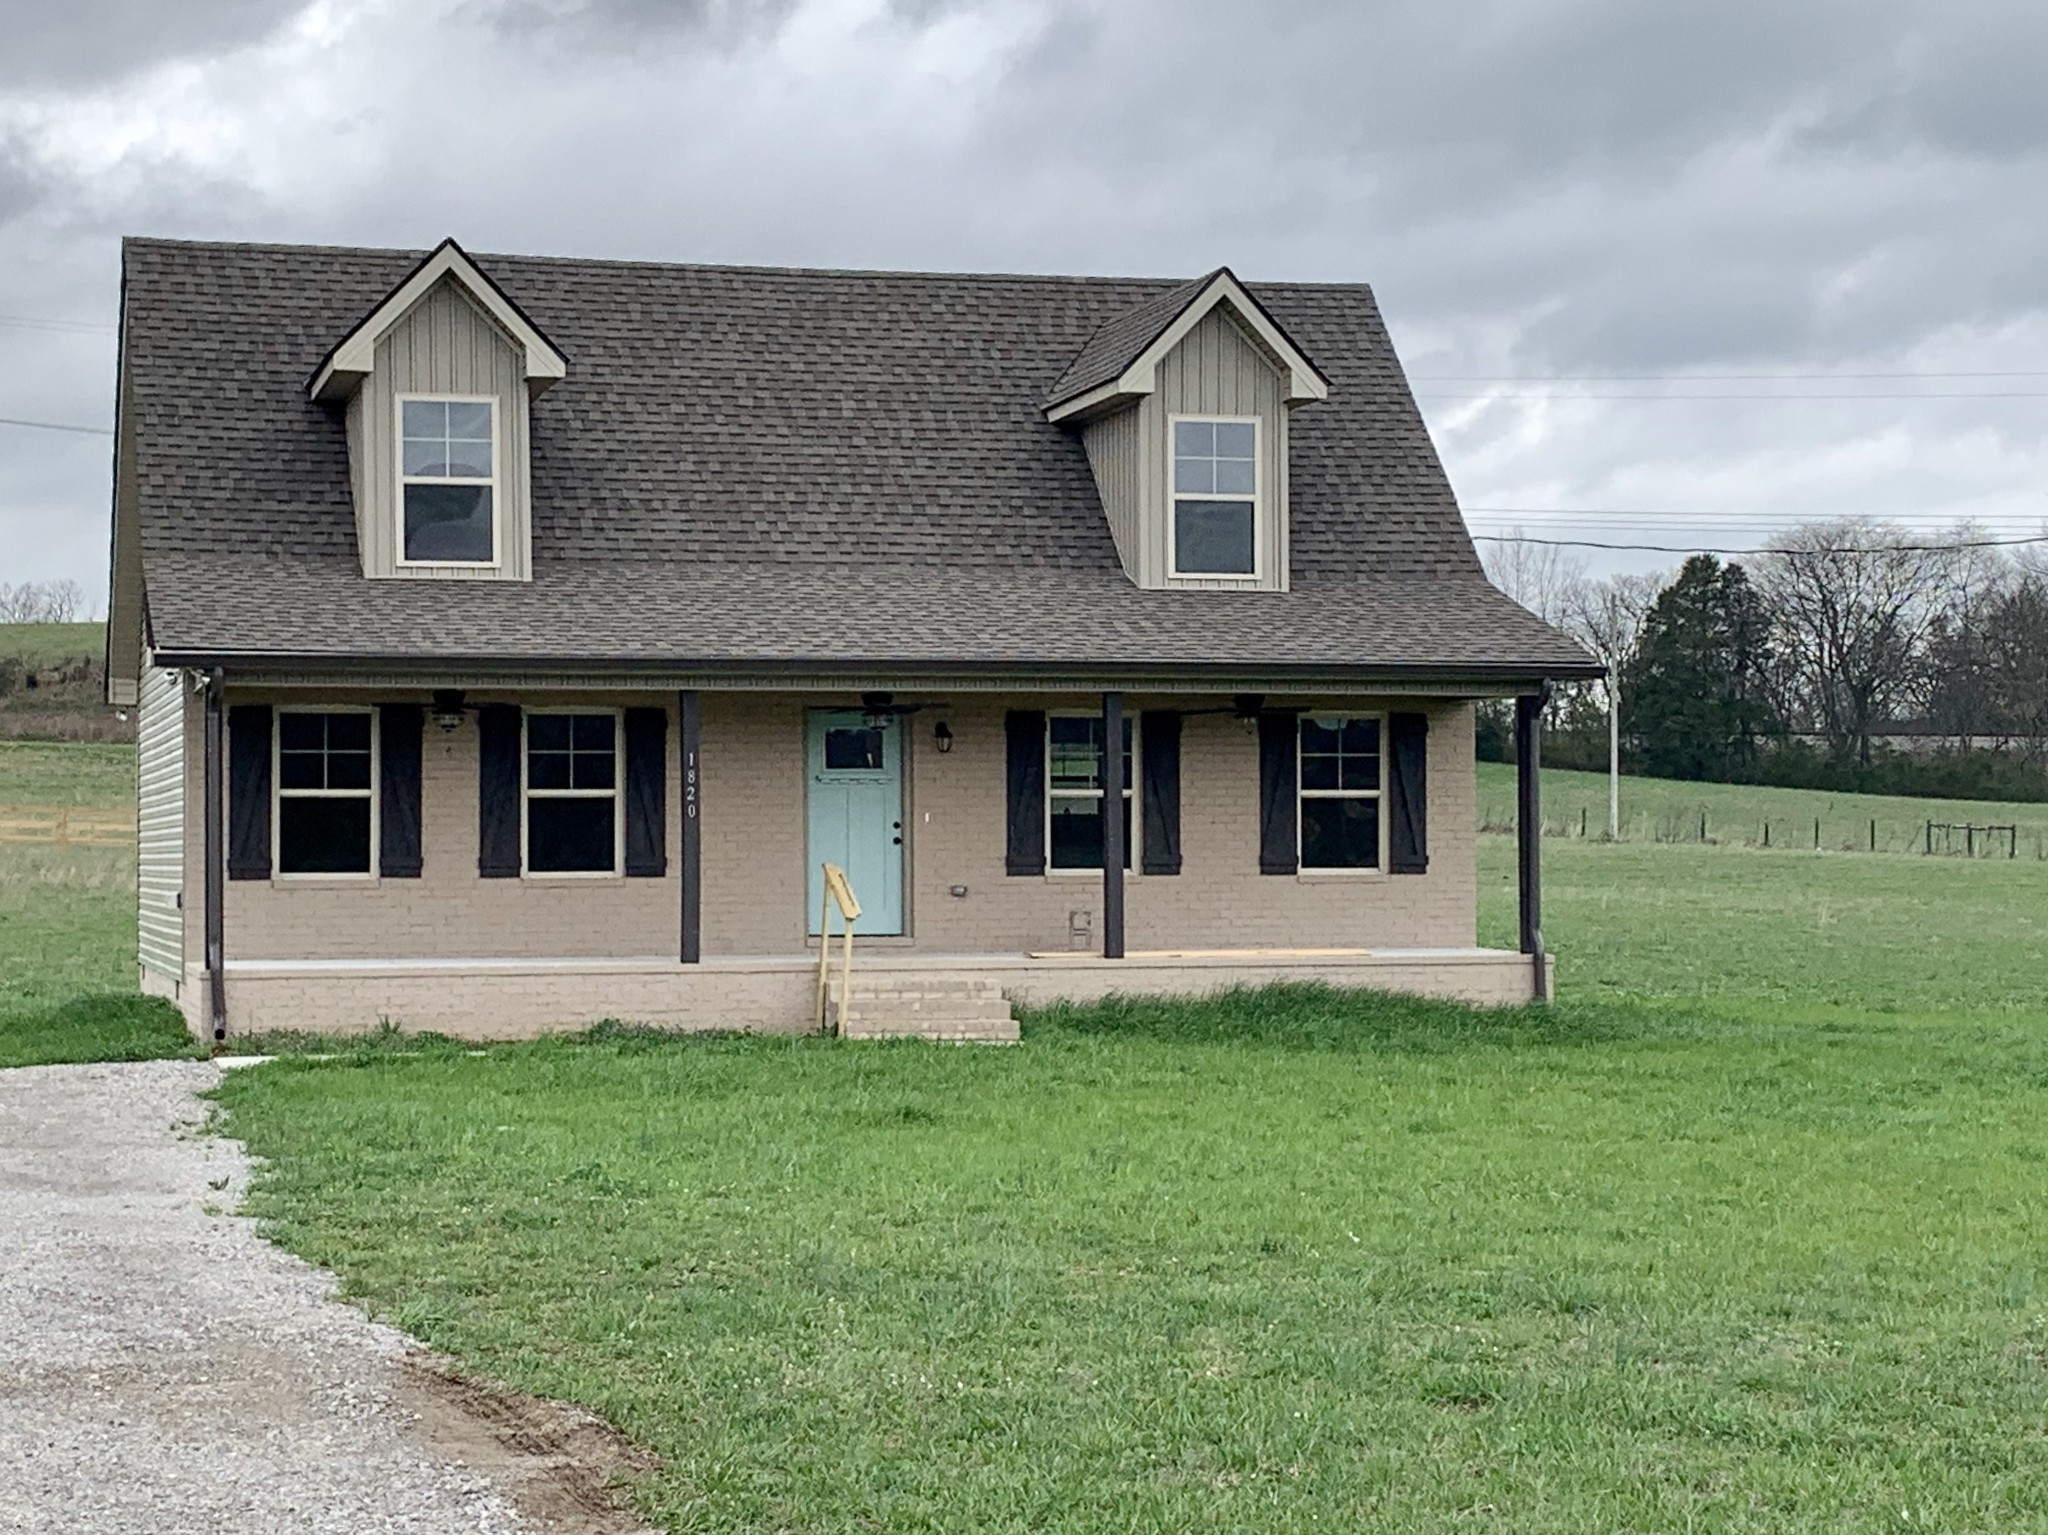 1820 Cornersville Hwy, Lewisburg, TN 37091 - Lewisburg, TN real estate listing